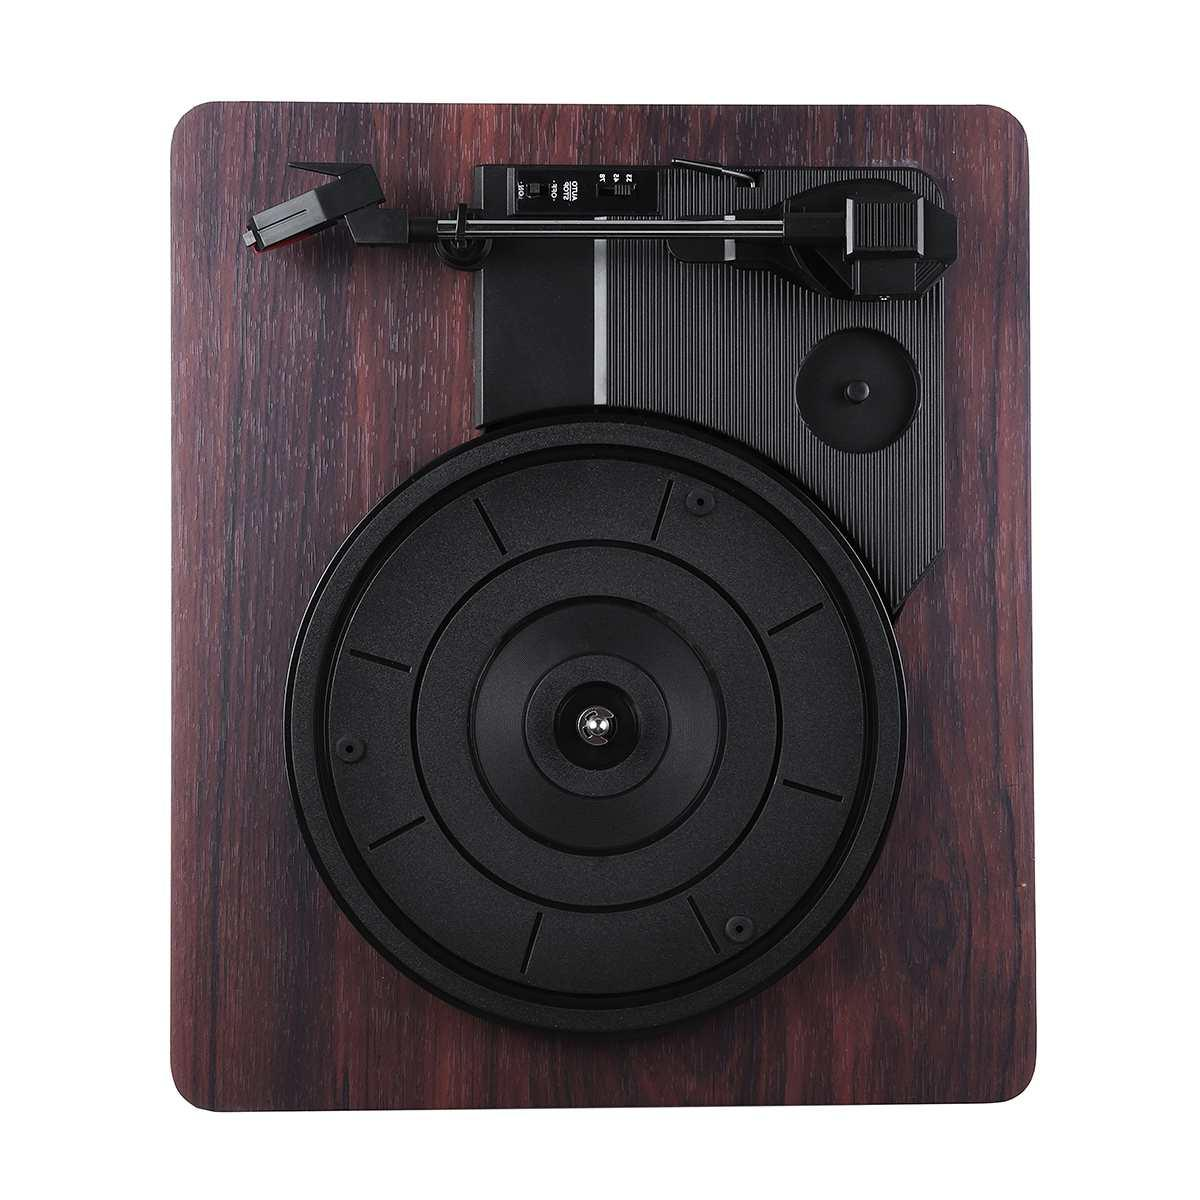 33, 45, <font><b>Record</b></font> Antique Gramophone <font><b>Turntable</b></font> Audio RCA R/L 3.5mm Output Out Wood